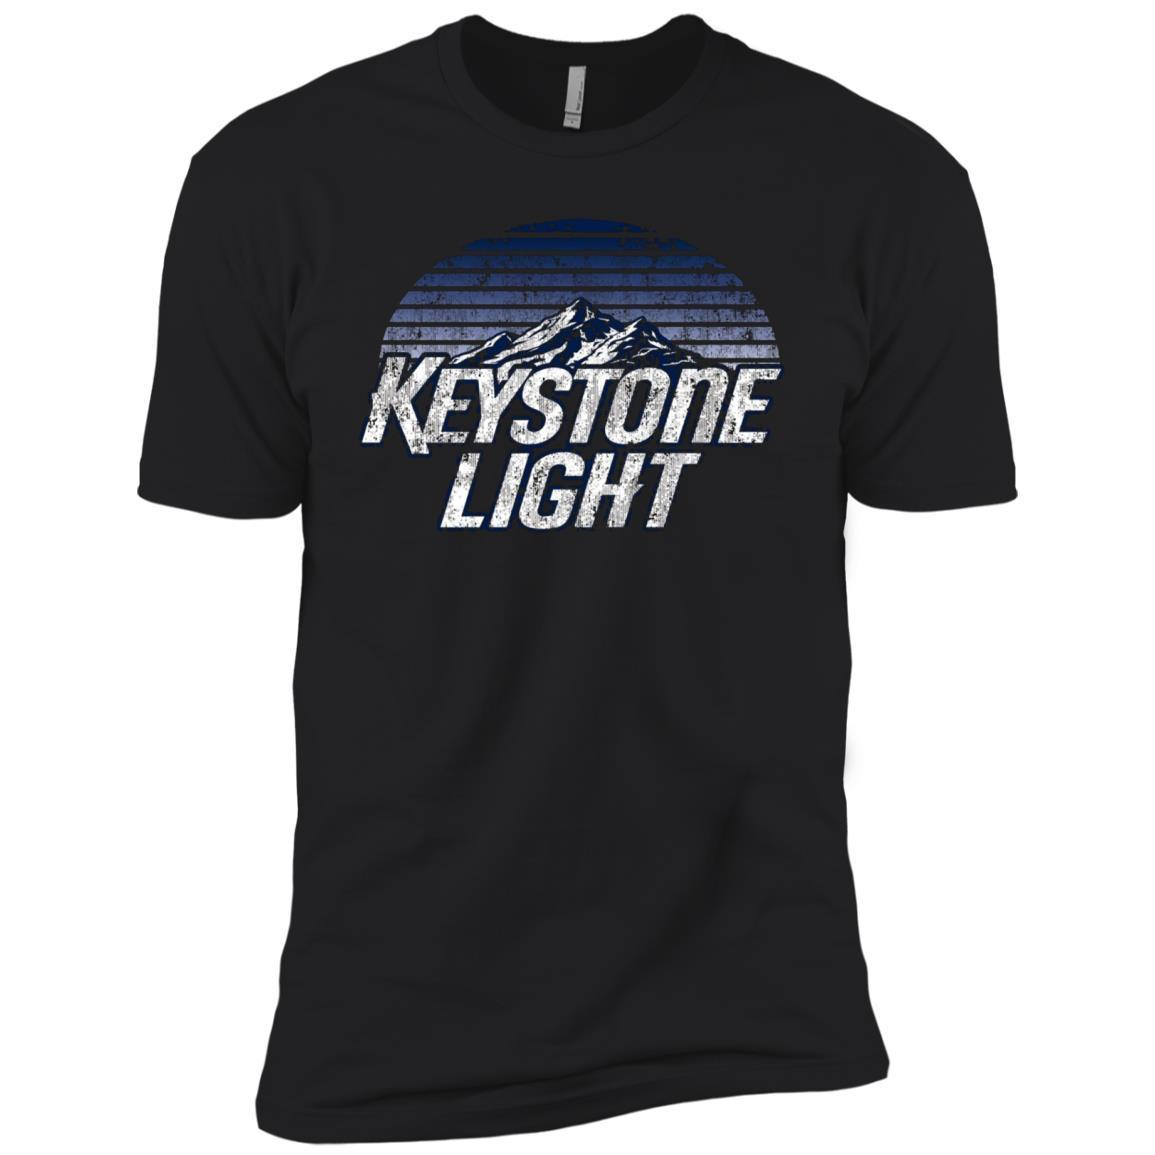 Keystone Light Beer Classic Look – Short Sleeve T-Shirt